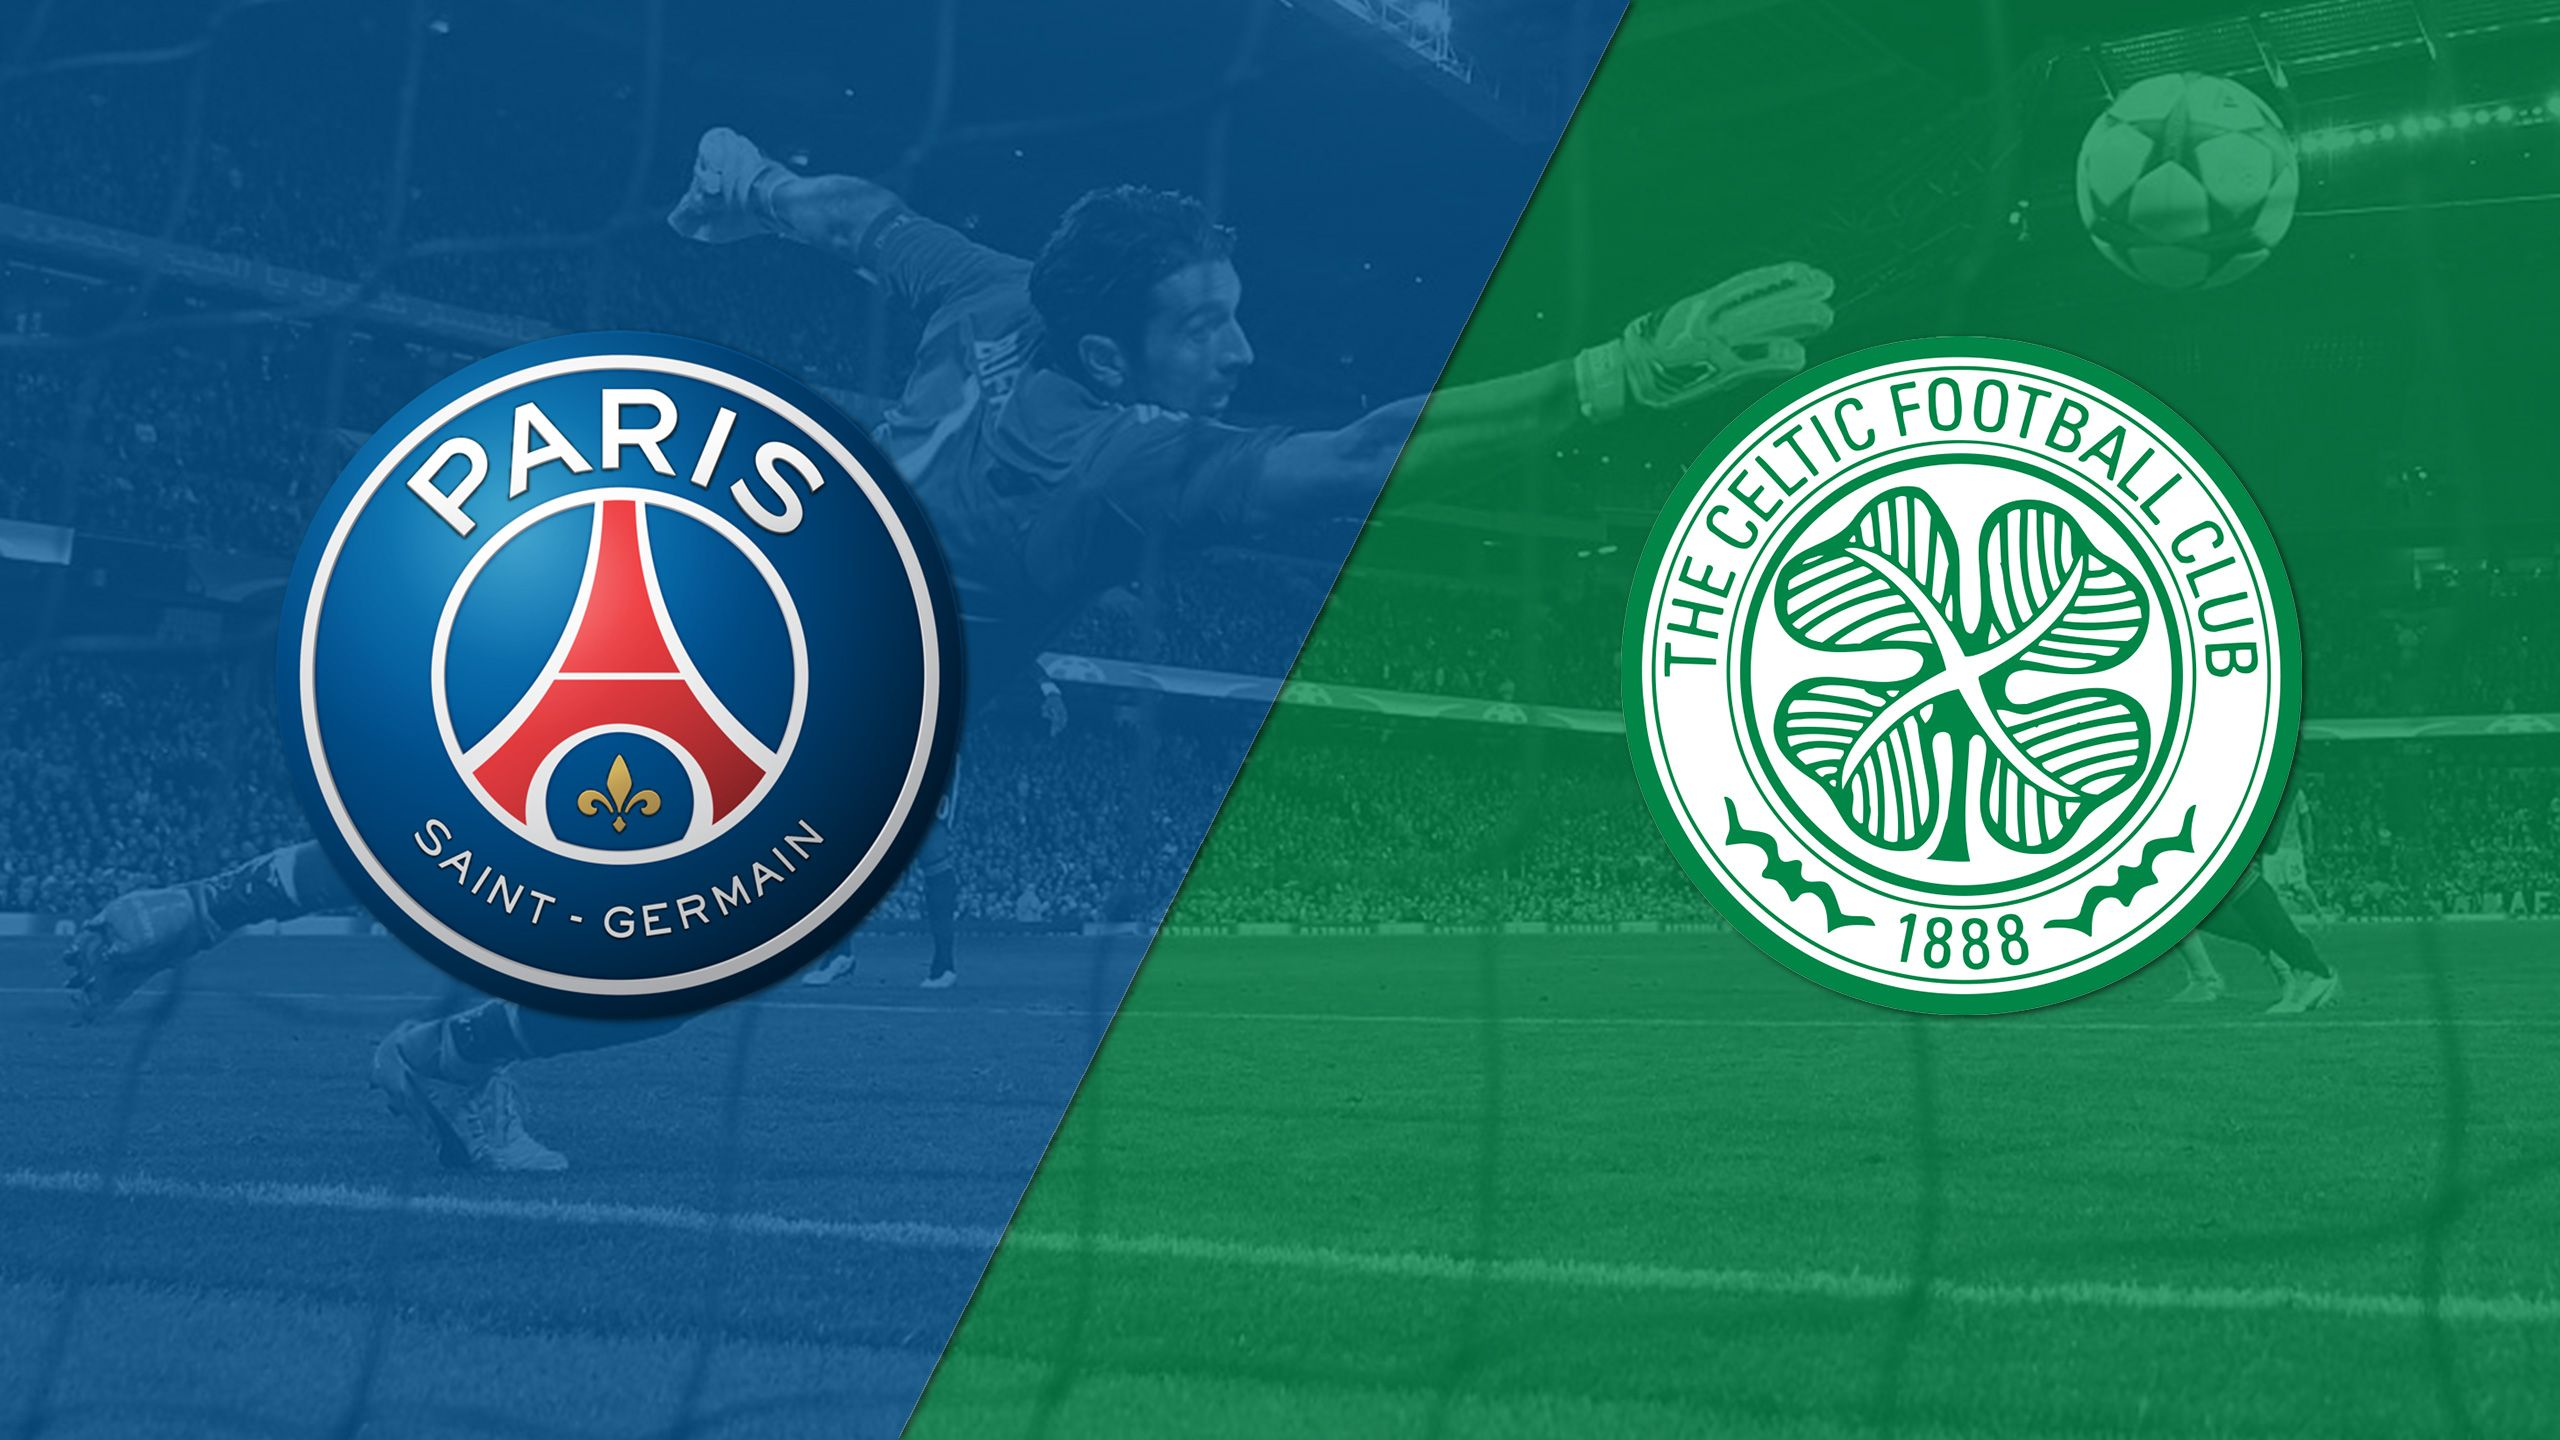 In Spanish - Paris Saint-Germain vs. Celtic (Group Stage #5) (UEFA Champions League)